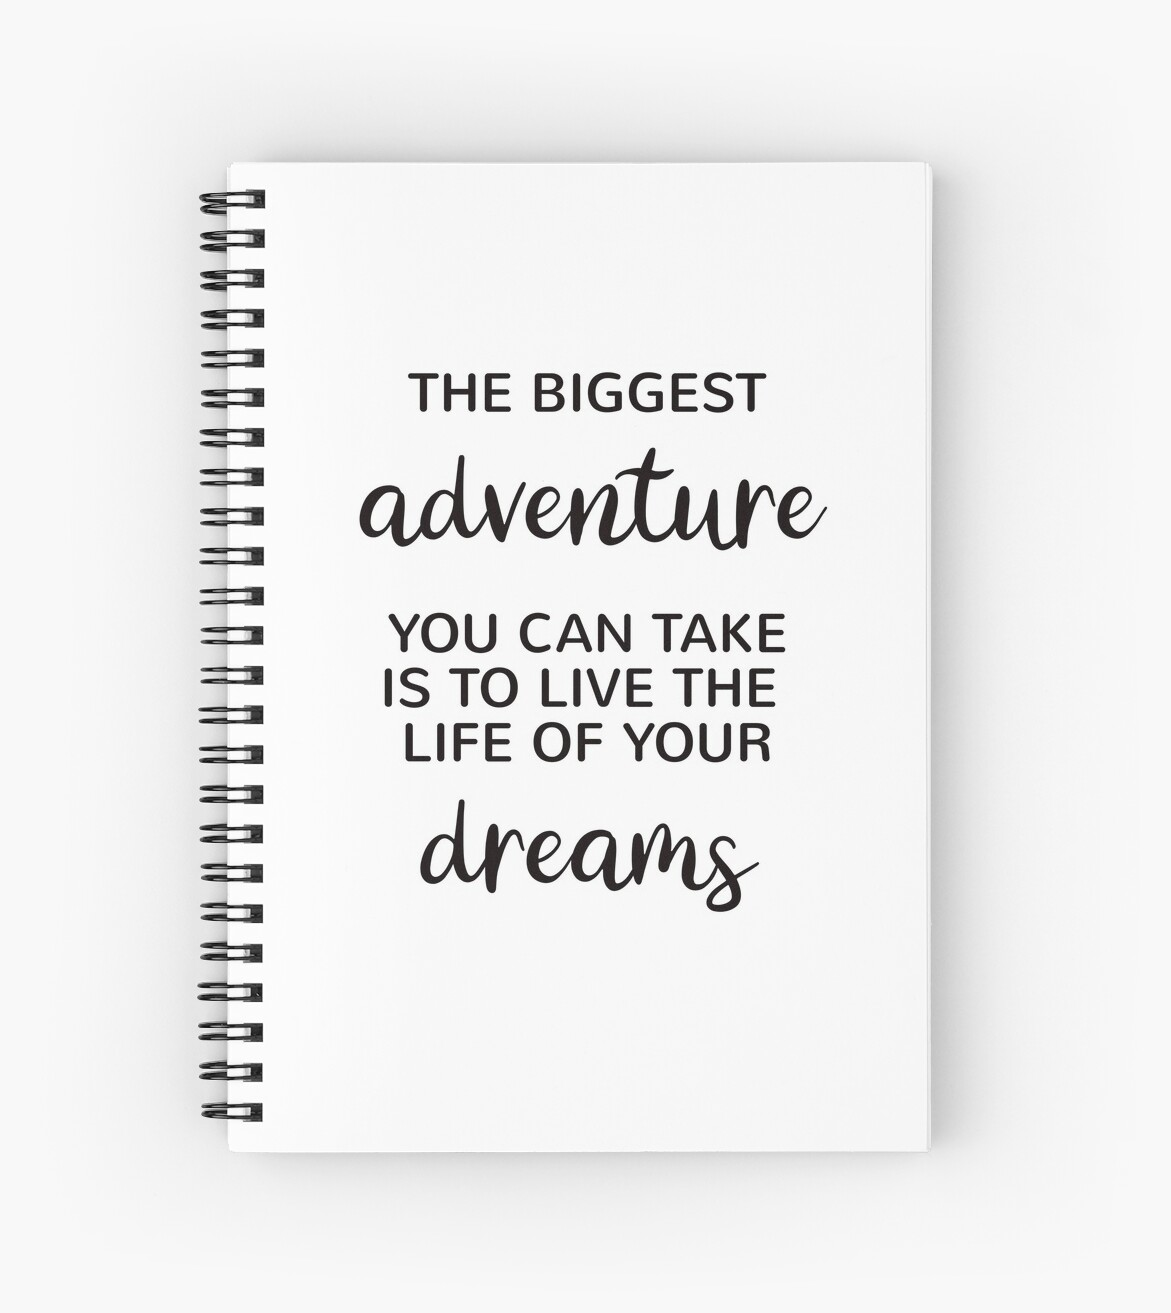 The biggest adventure you can take is to live the life of your dreams by BrightNomad